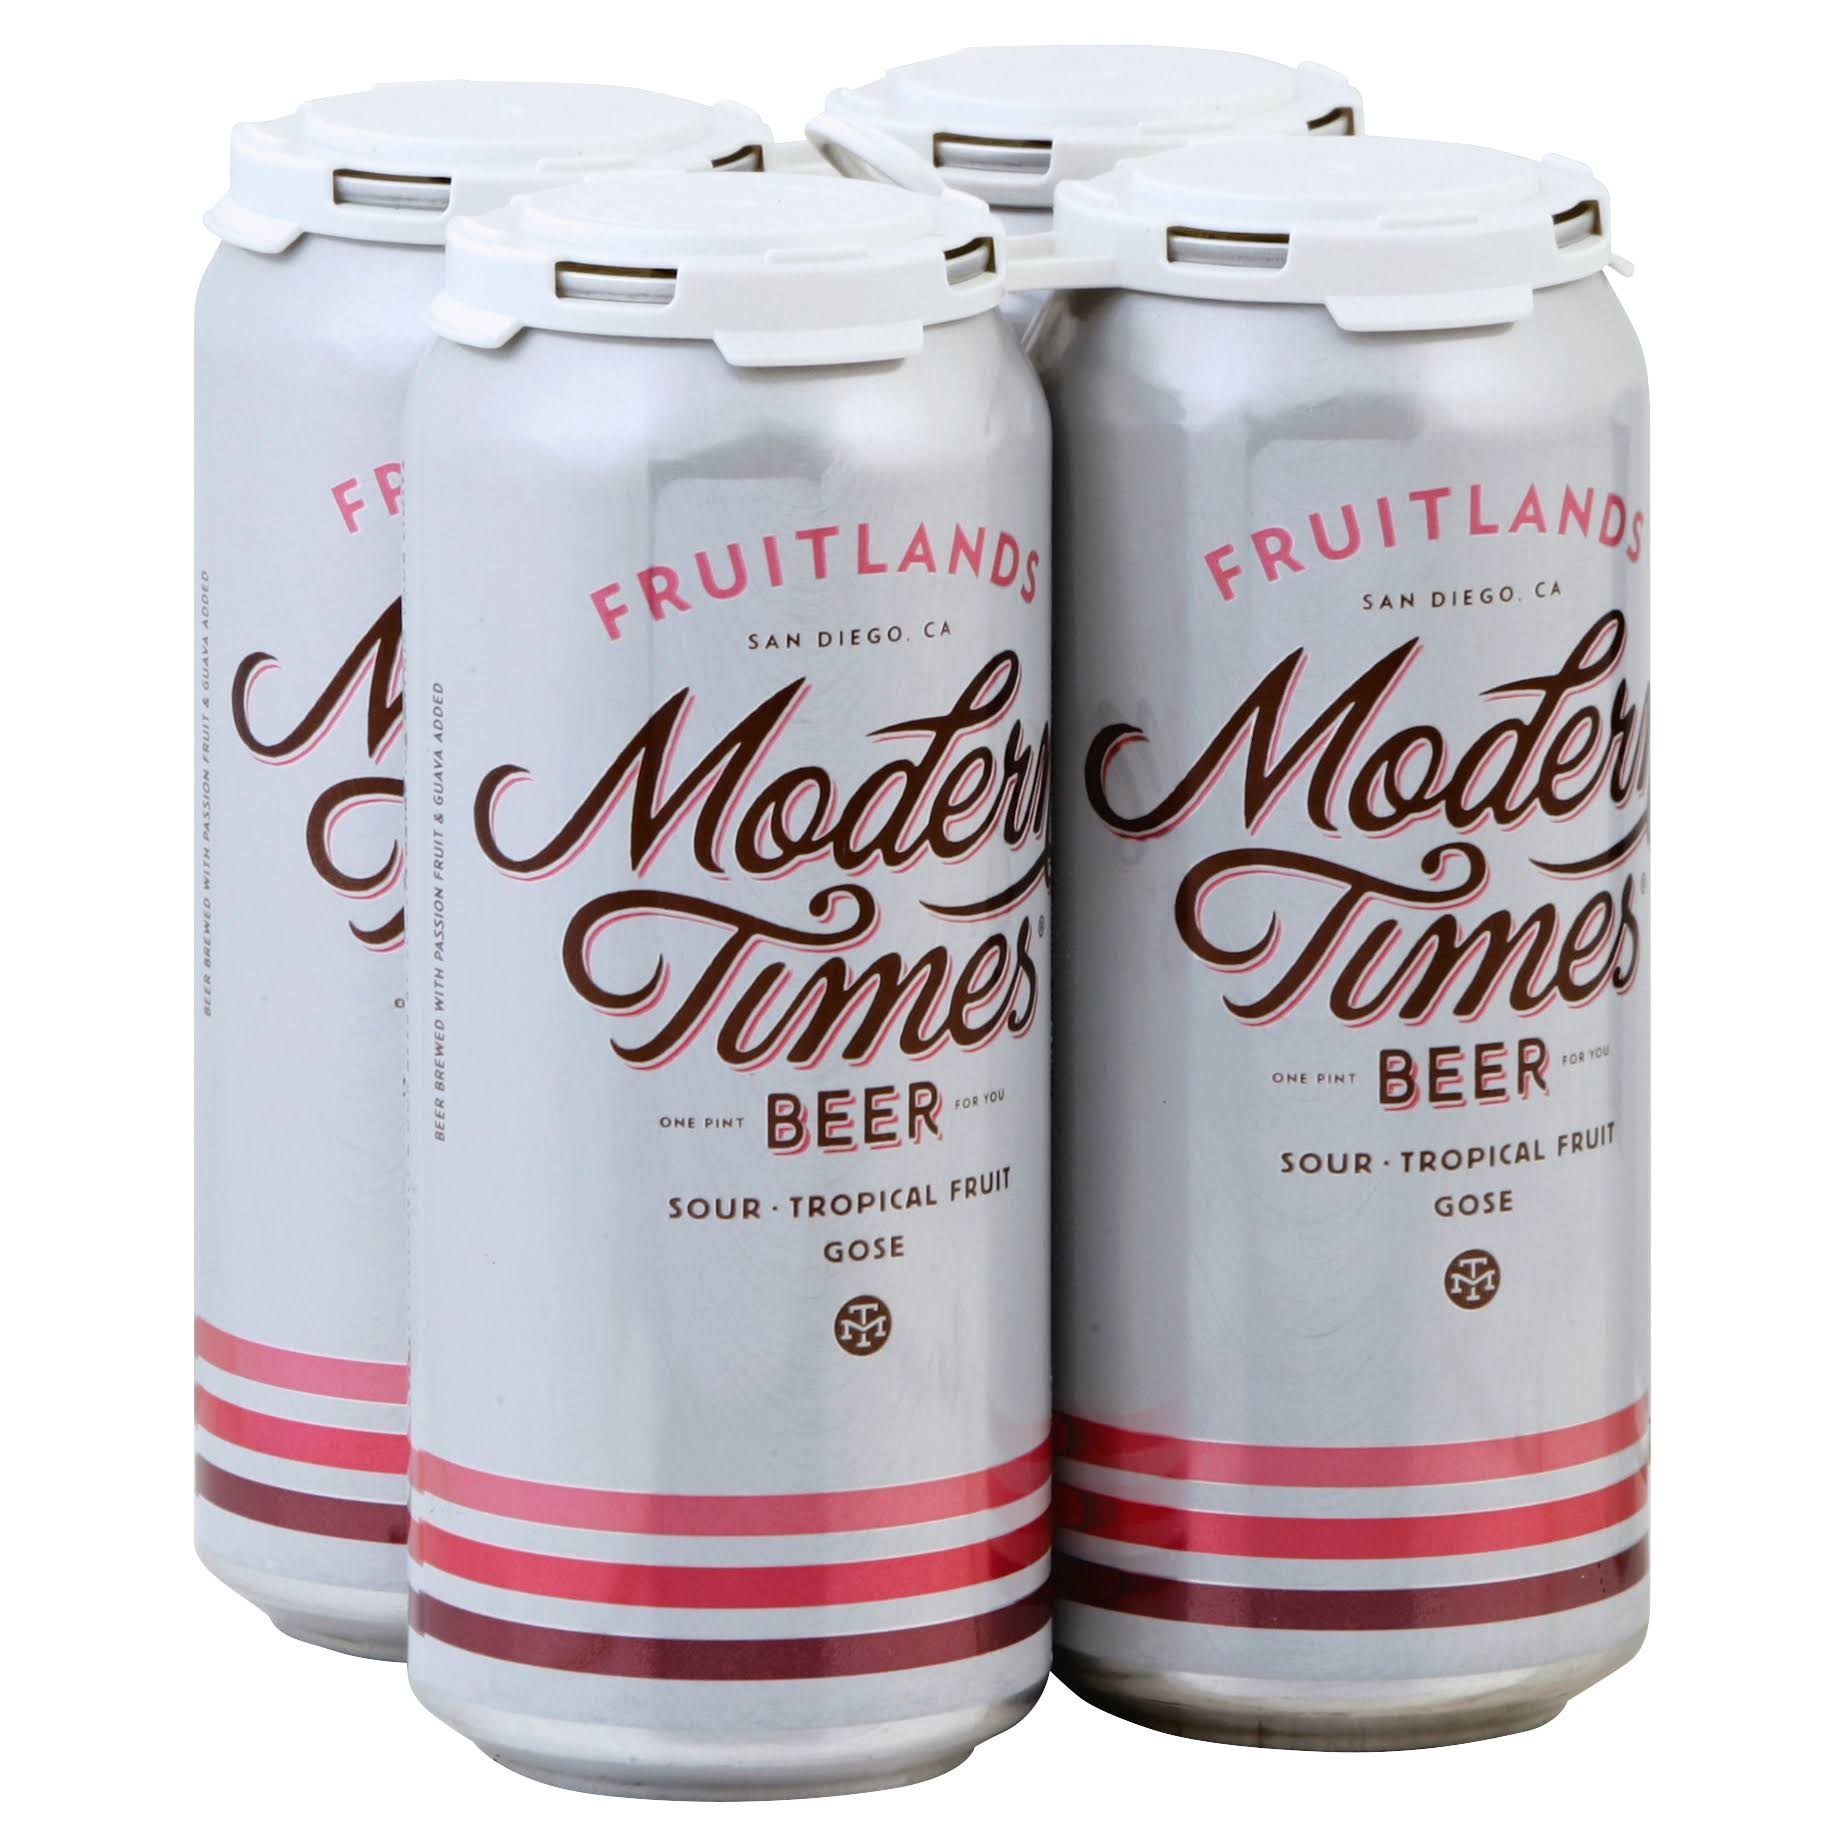 Modern Times Beer, Fruitlands - 4 - 1 pint cans